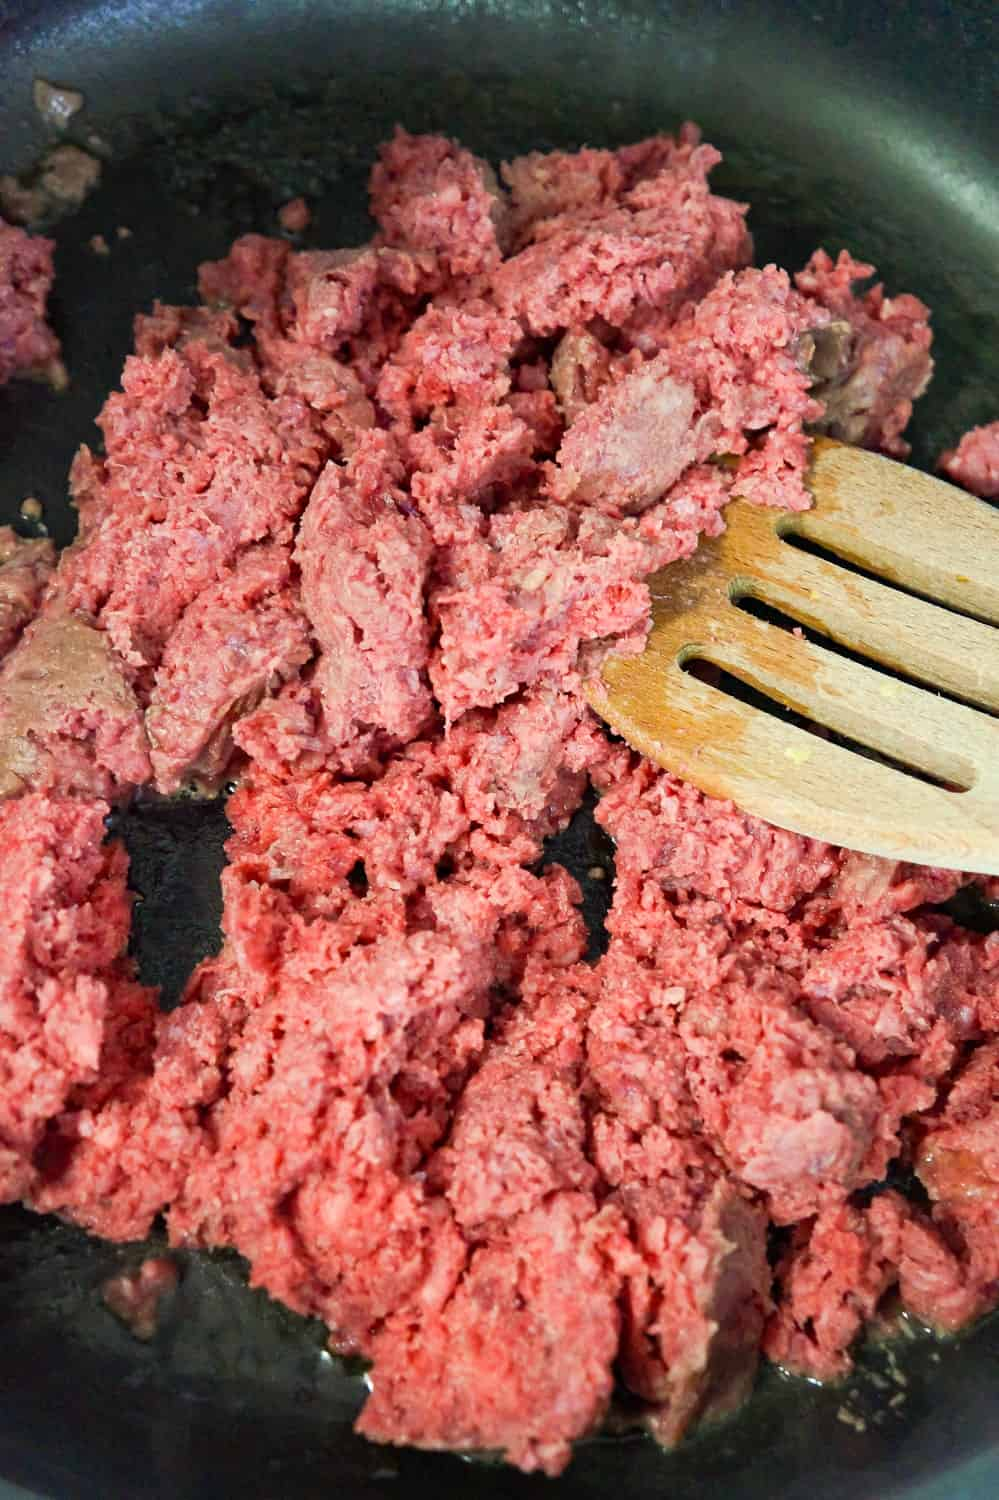 ground beef cooking in a frying pan